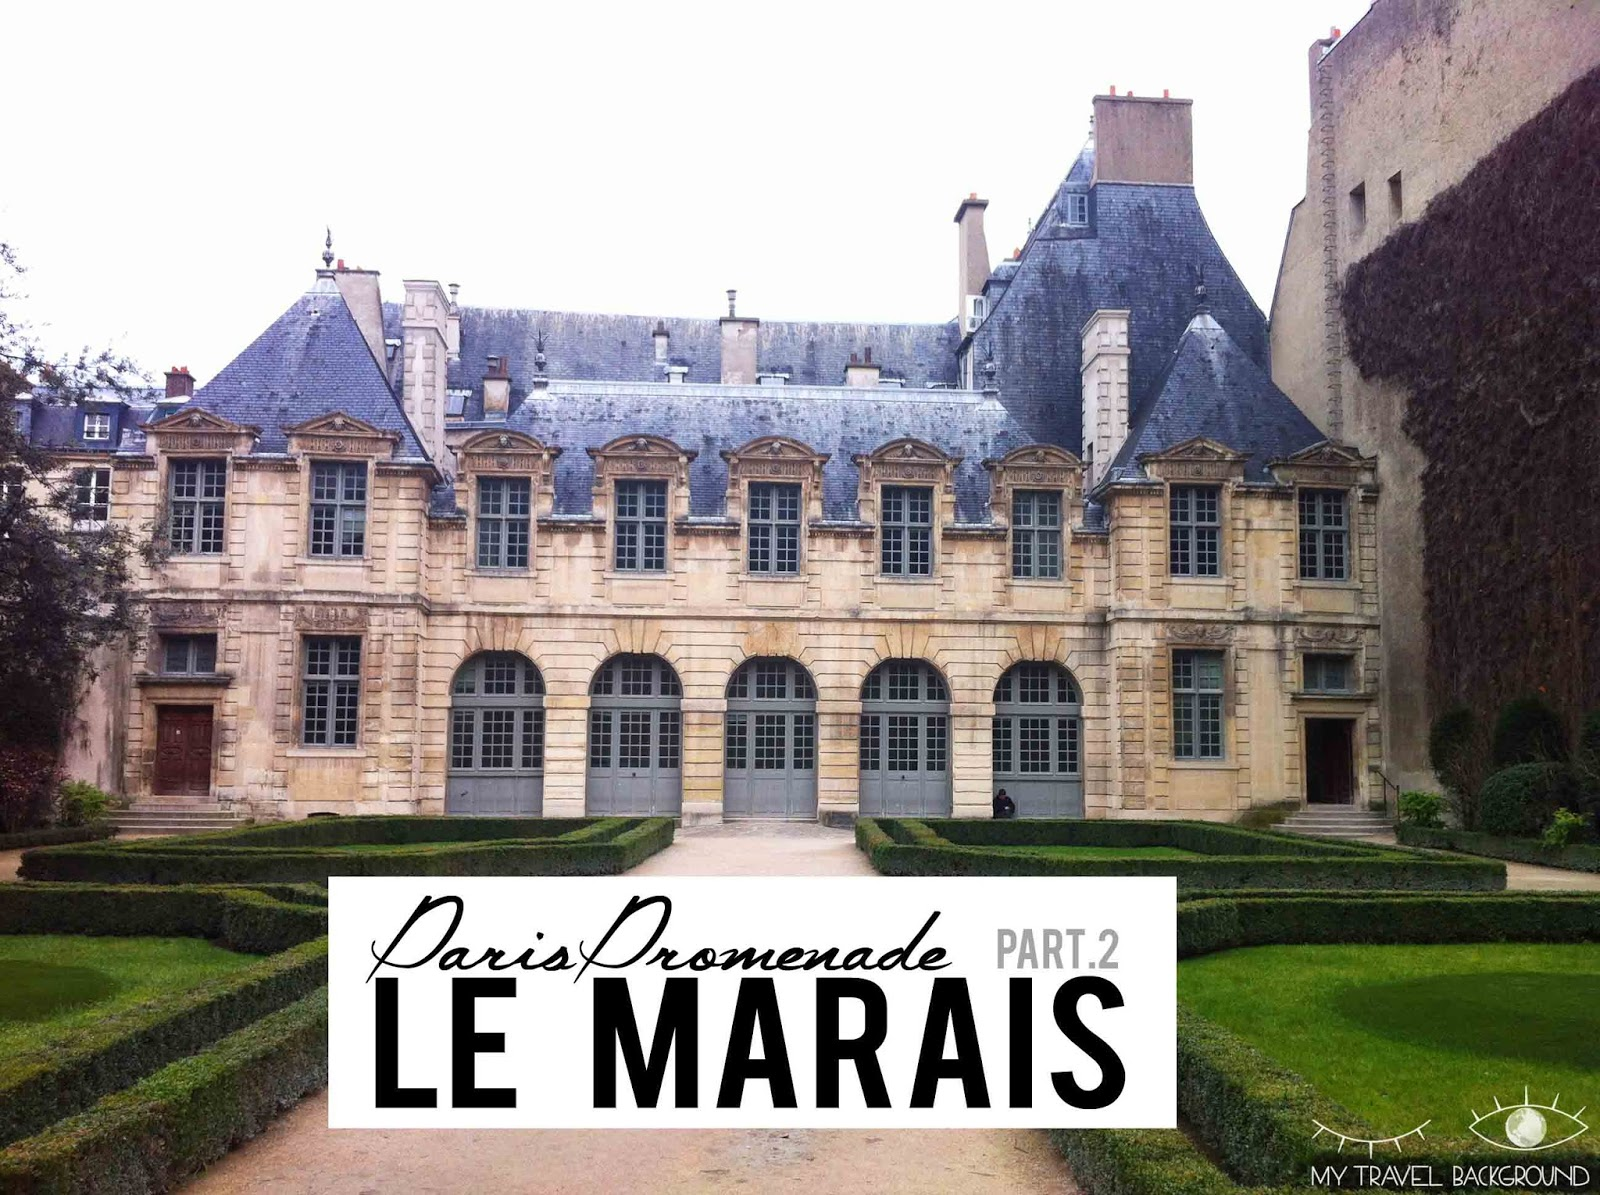 My Travel Background : #ParisPromenade, Le Marais